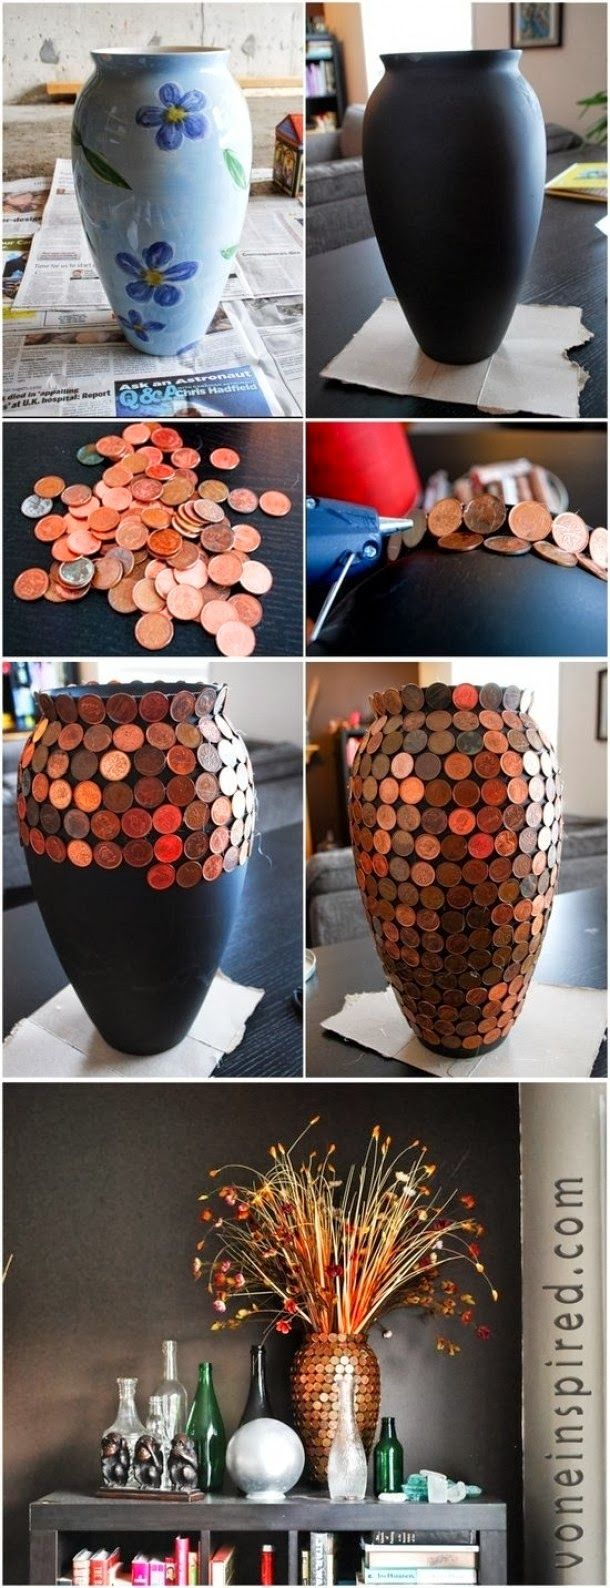 perhaps with all the copper-colored Euro coins we're amassing?